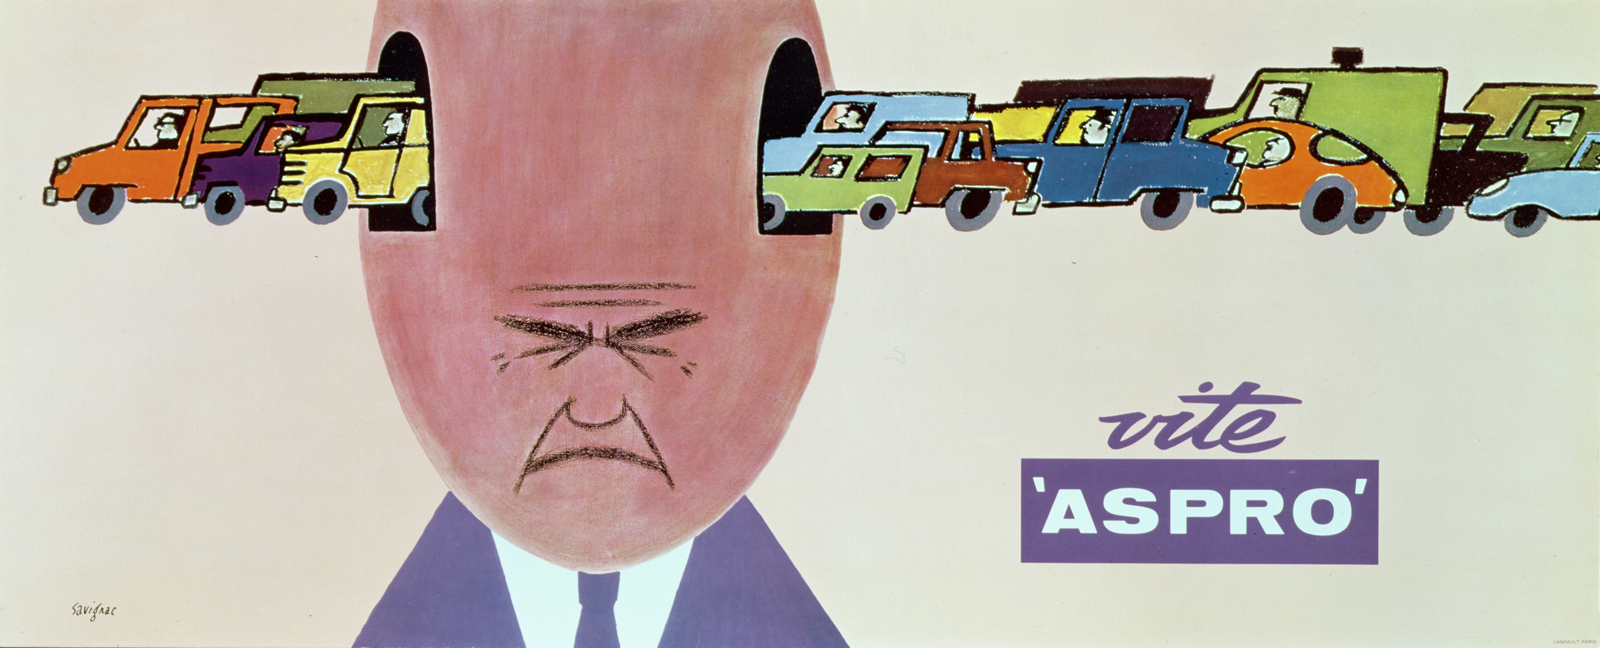 Poster advertising Vite Aspro, a French painkiller, 1964